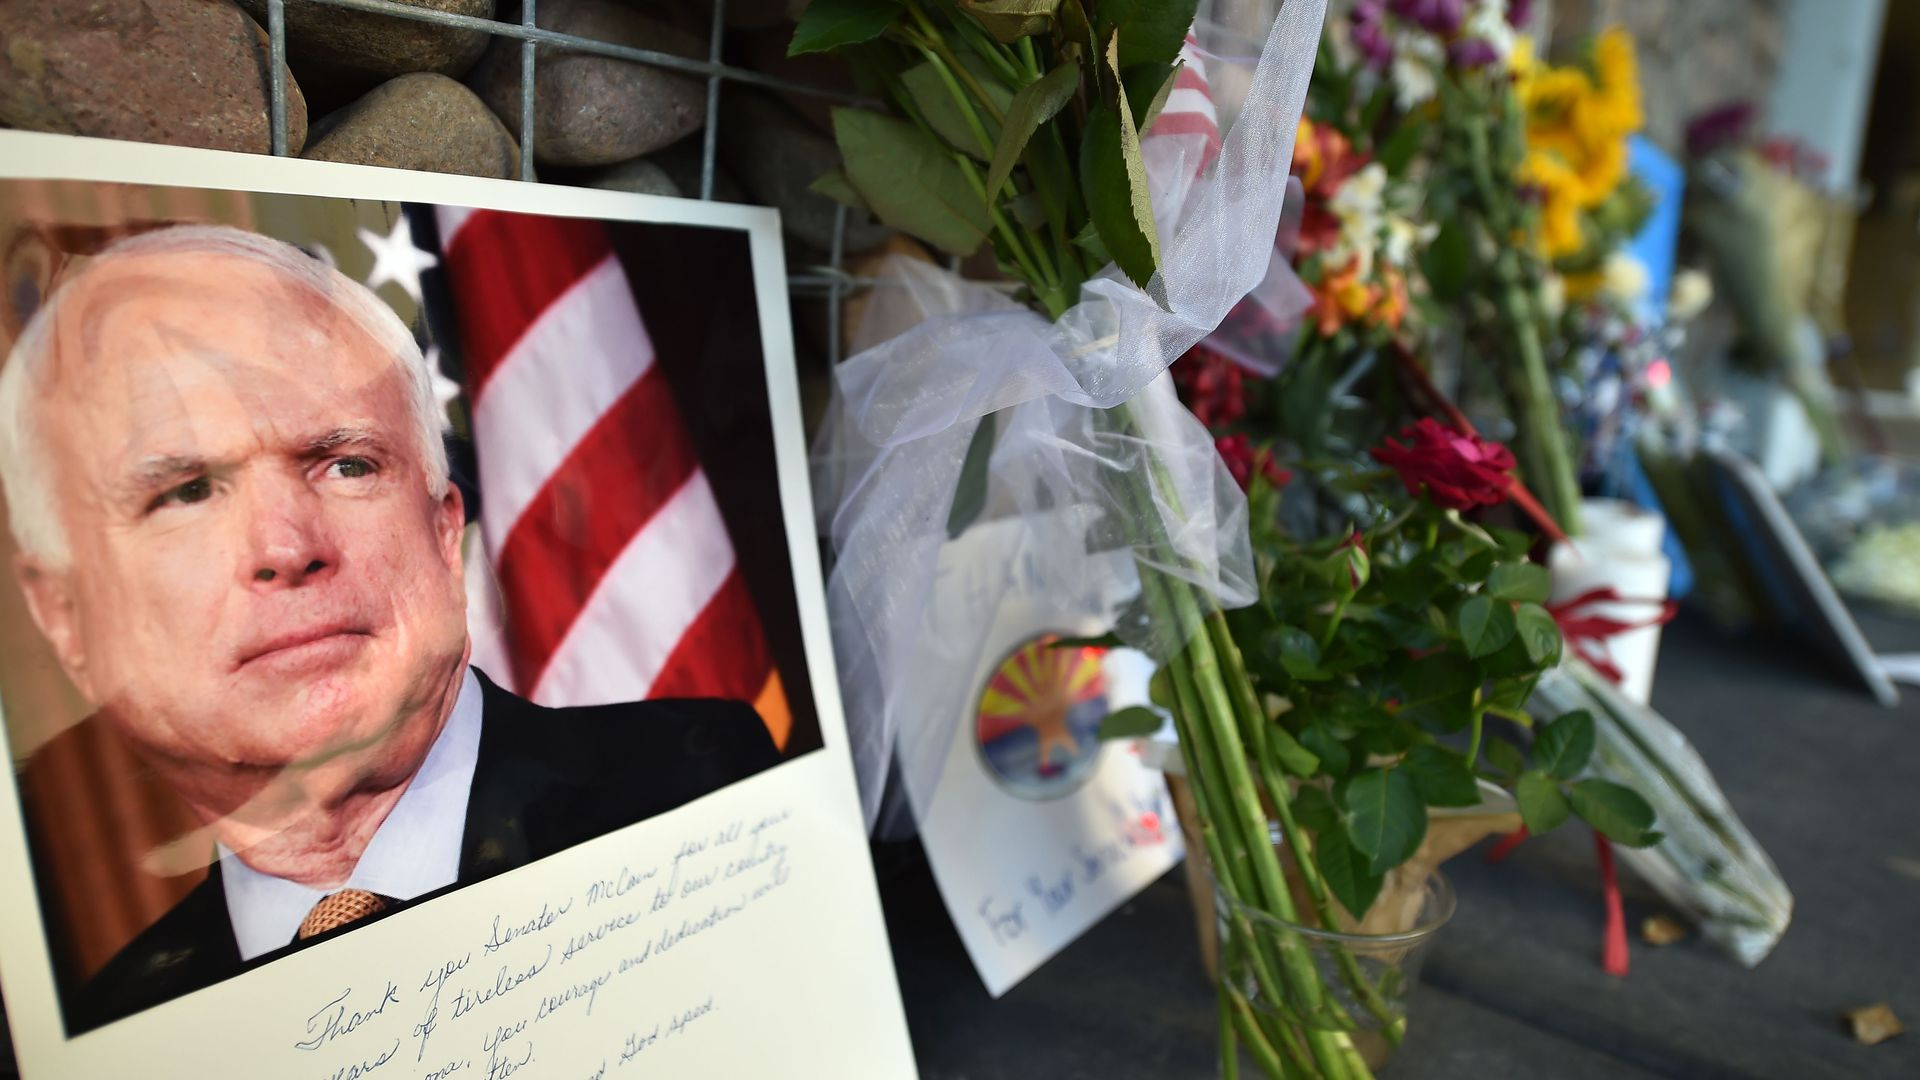 A makeshift memorial to Sen. John McCain outside his office in Phoenix, Arizona. Photo: Robyn Beck/AFP/Getty Images